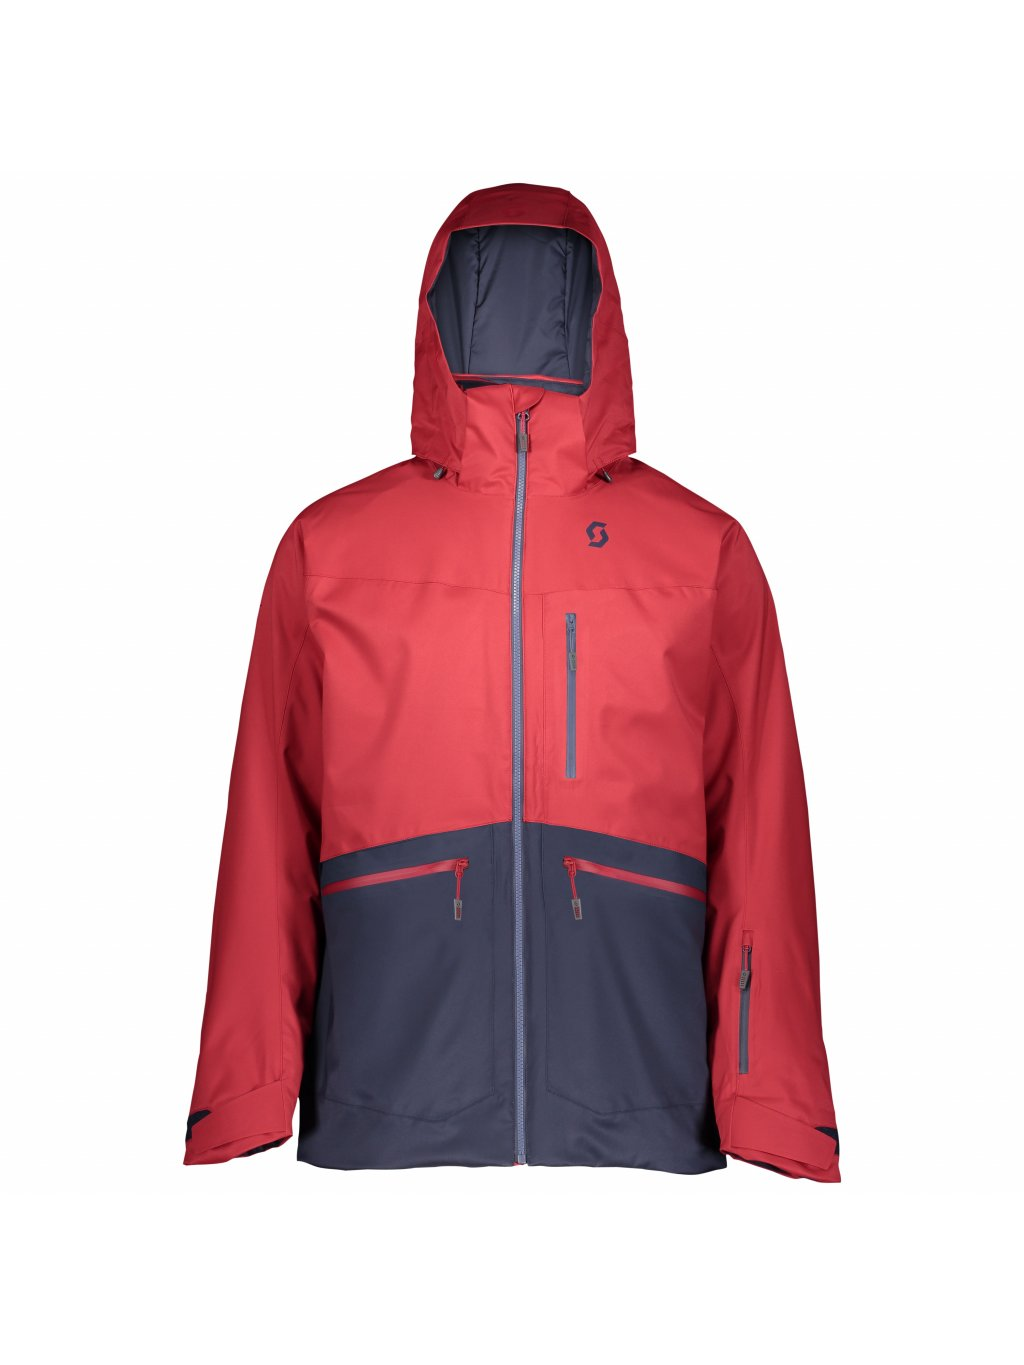 SCOTTJacketM'sUltimateDRX, wine red/blue nights